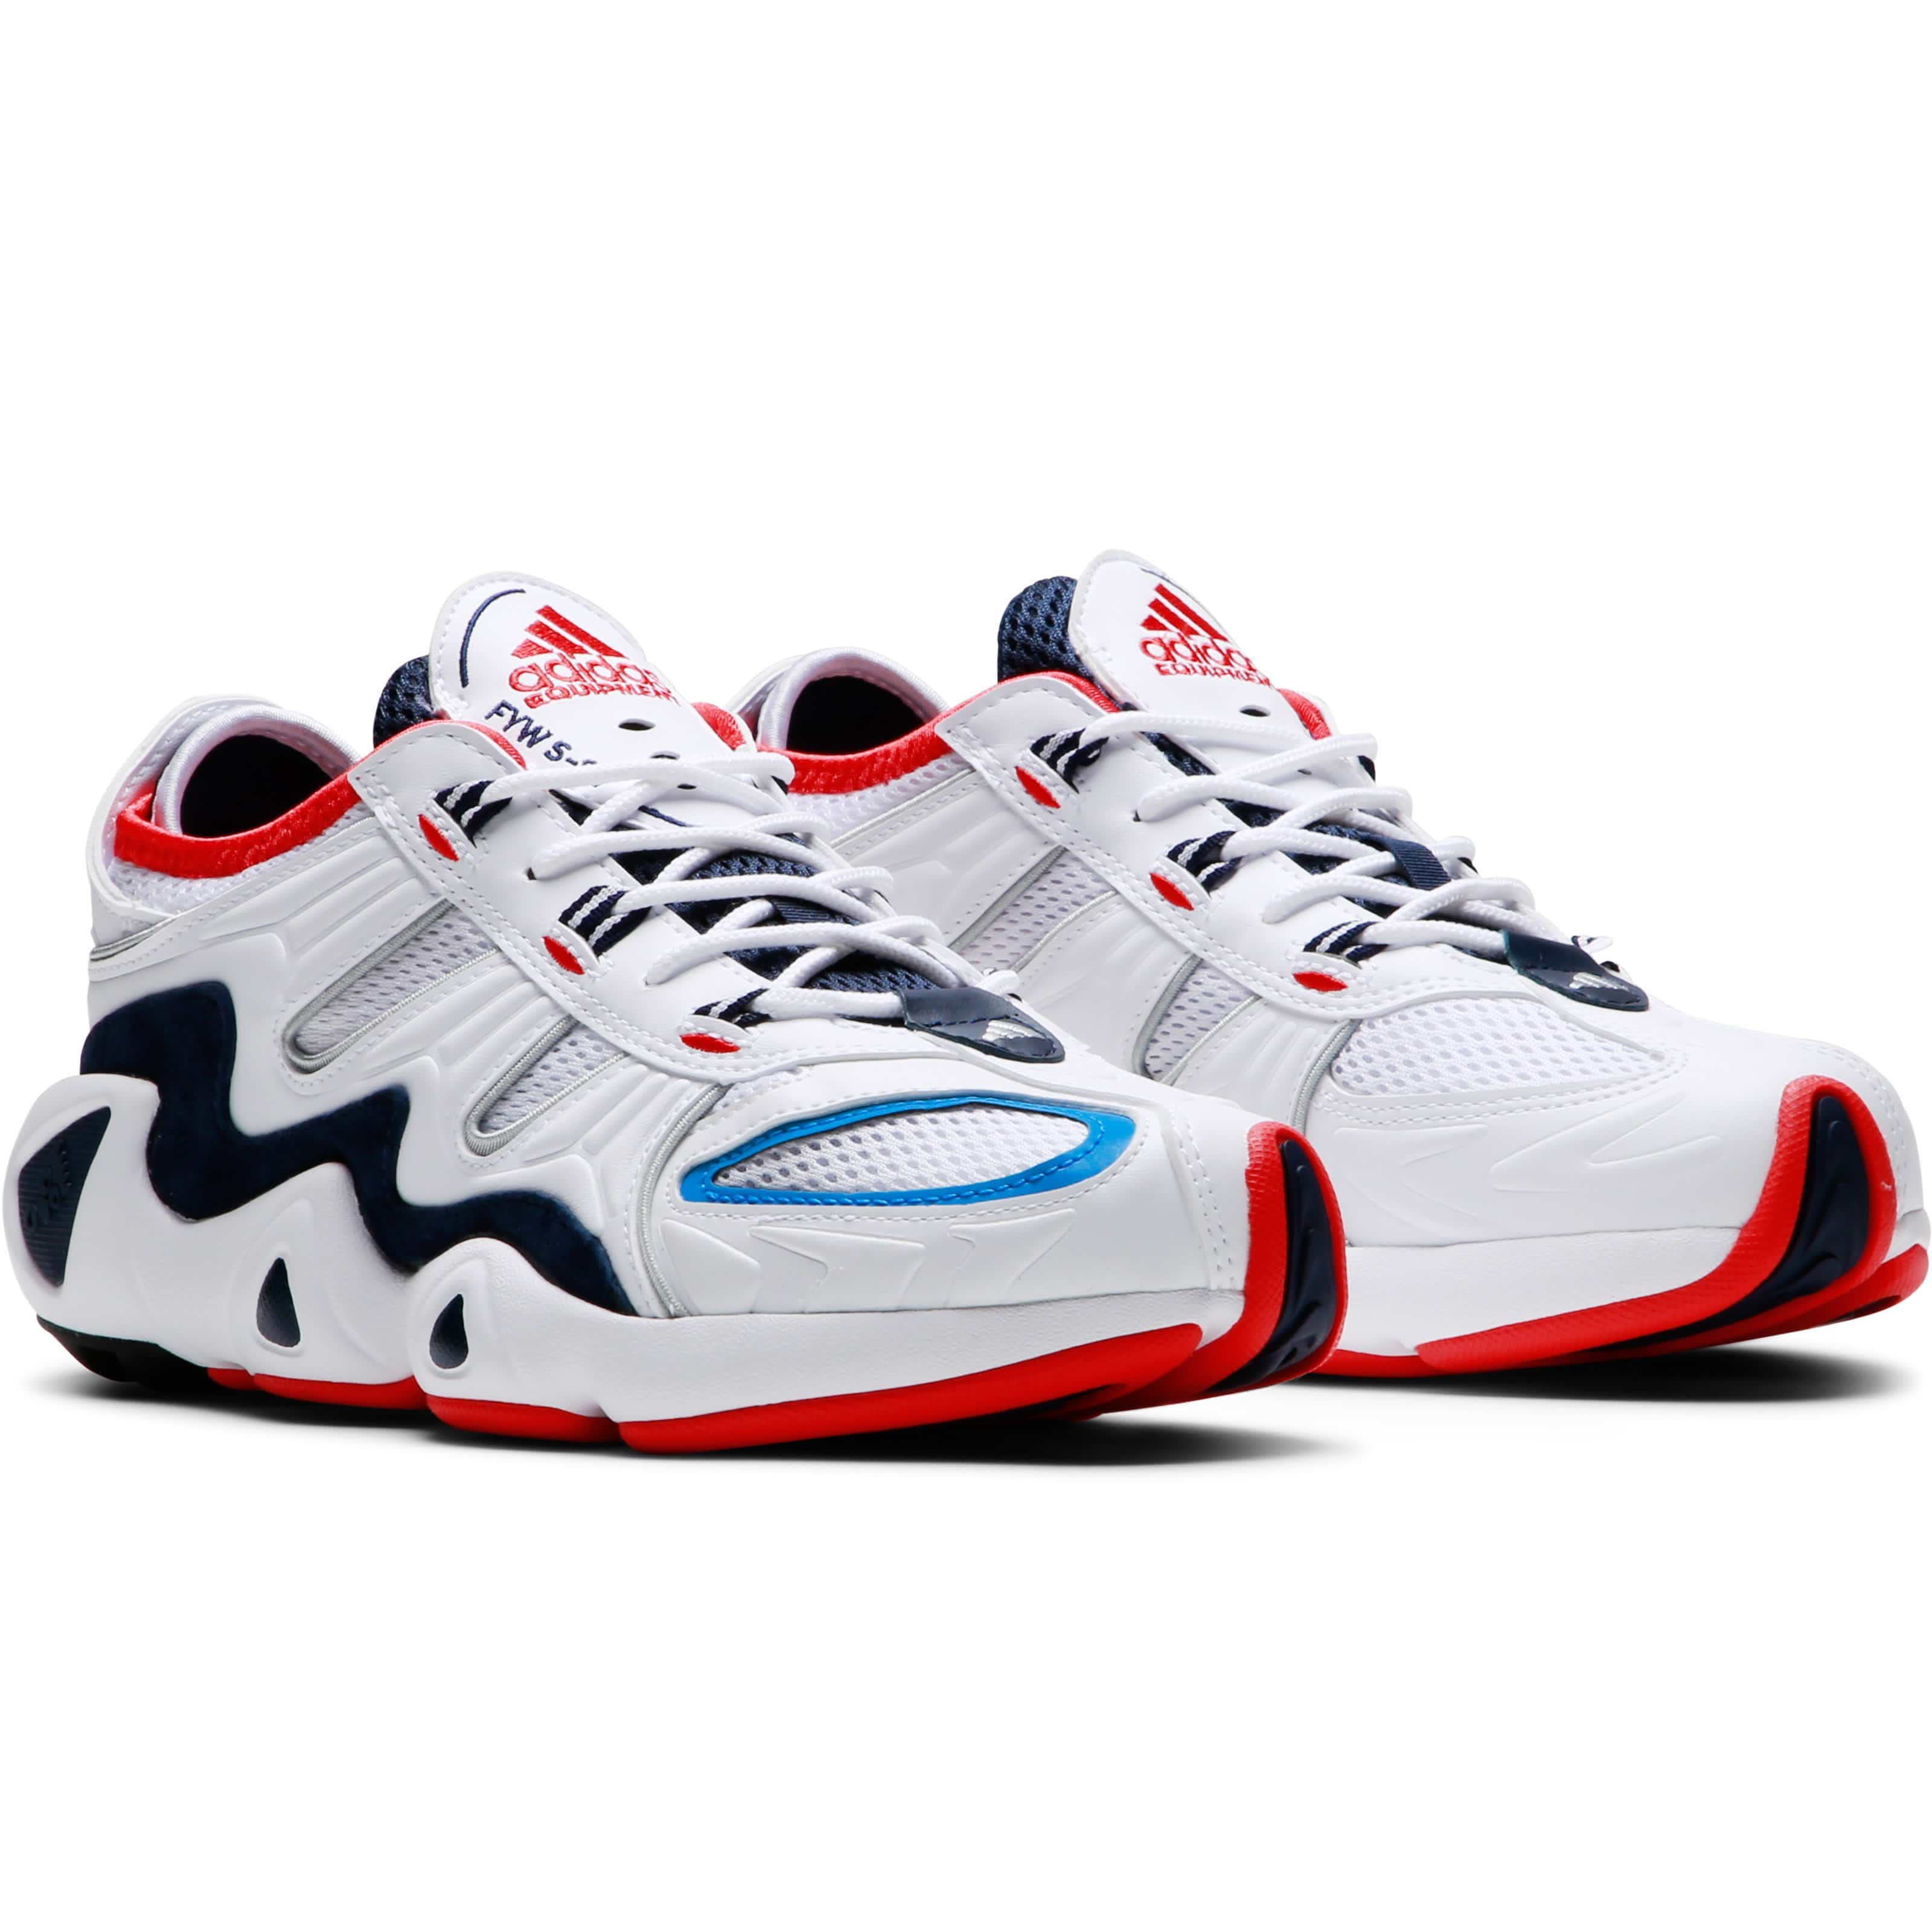 Adidas Shoes FYW-S97 SALVATION